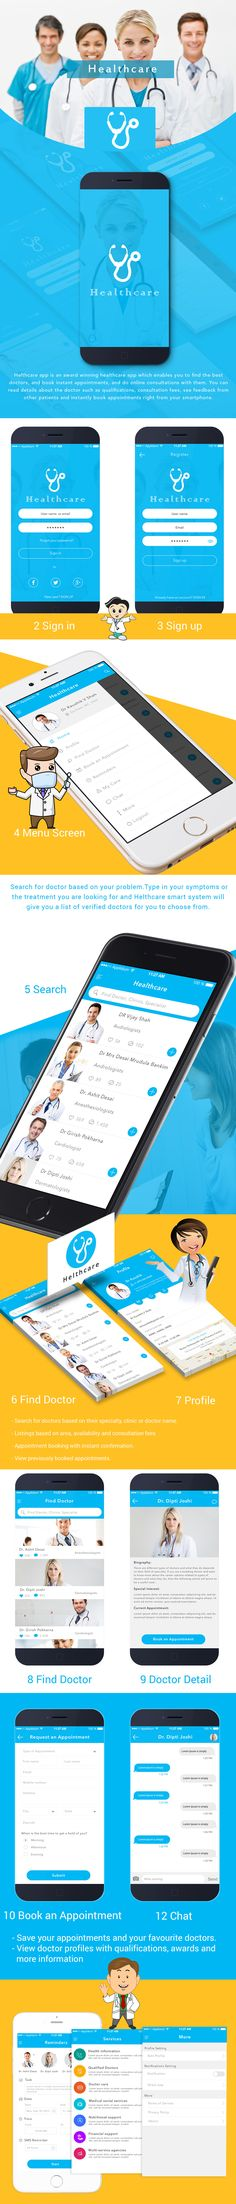 Healthcare Helpline is an online consultation platform connecting people with doctors through telephony. It enables medical help on the go Anywhere, Anytime, 24/7.We successfully bridge the gap between patients & doctors. We help save time and money, al…